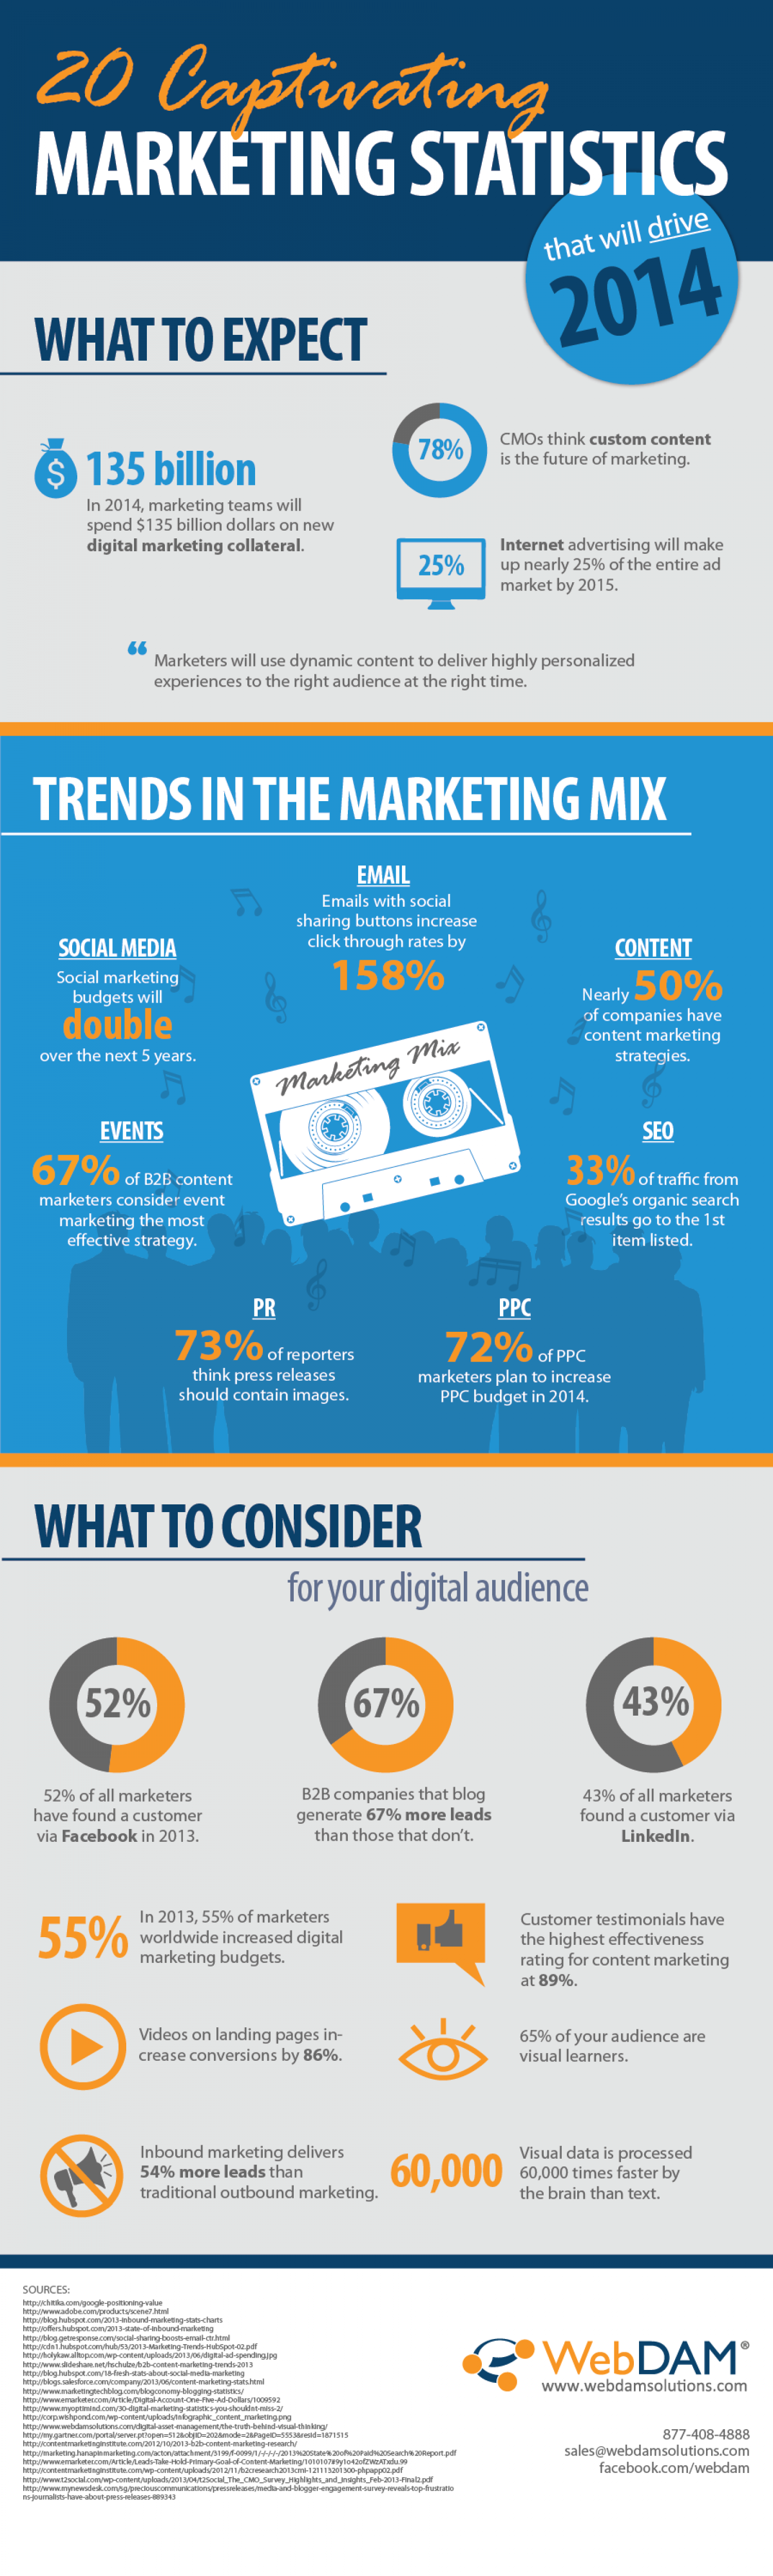 20 Captivating Marketing Statistics that will Drive 2014 Infographic